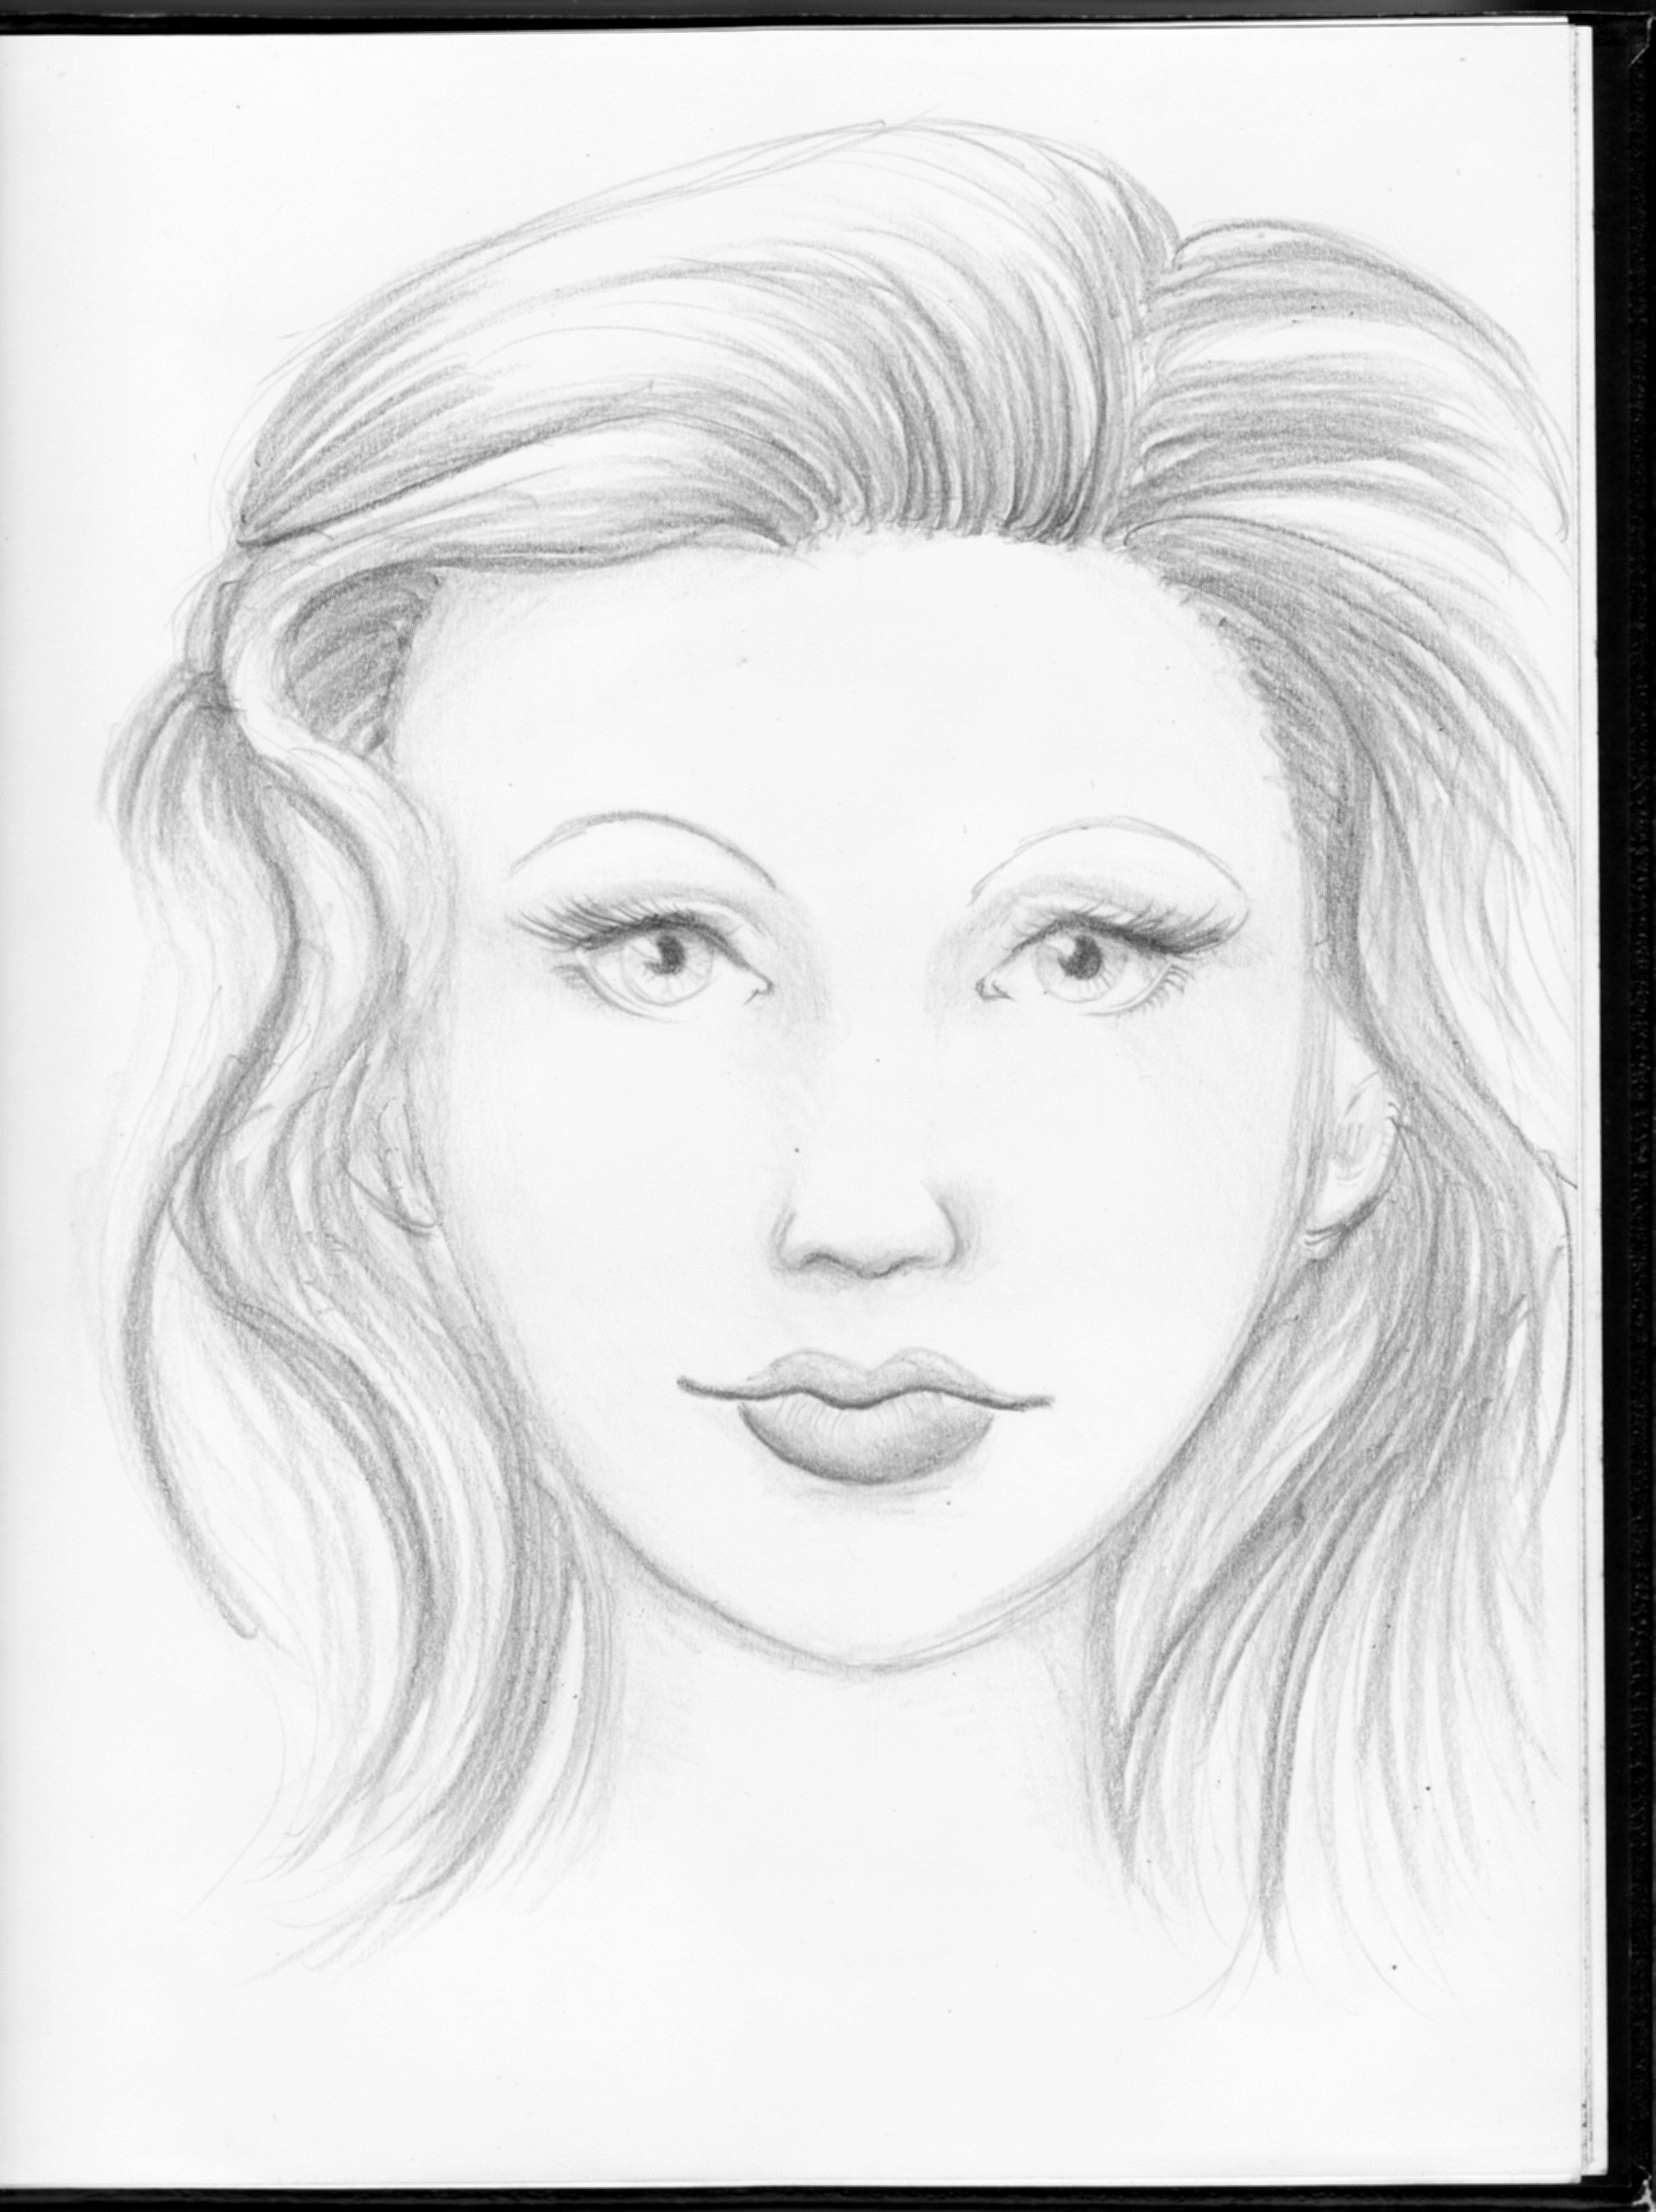 2548x3404 Face Easy Sketches Pencil Shade How To Draw Anime Faces In Pencil